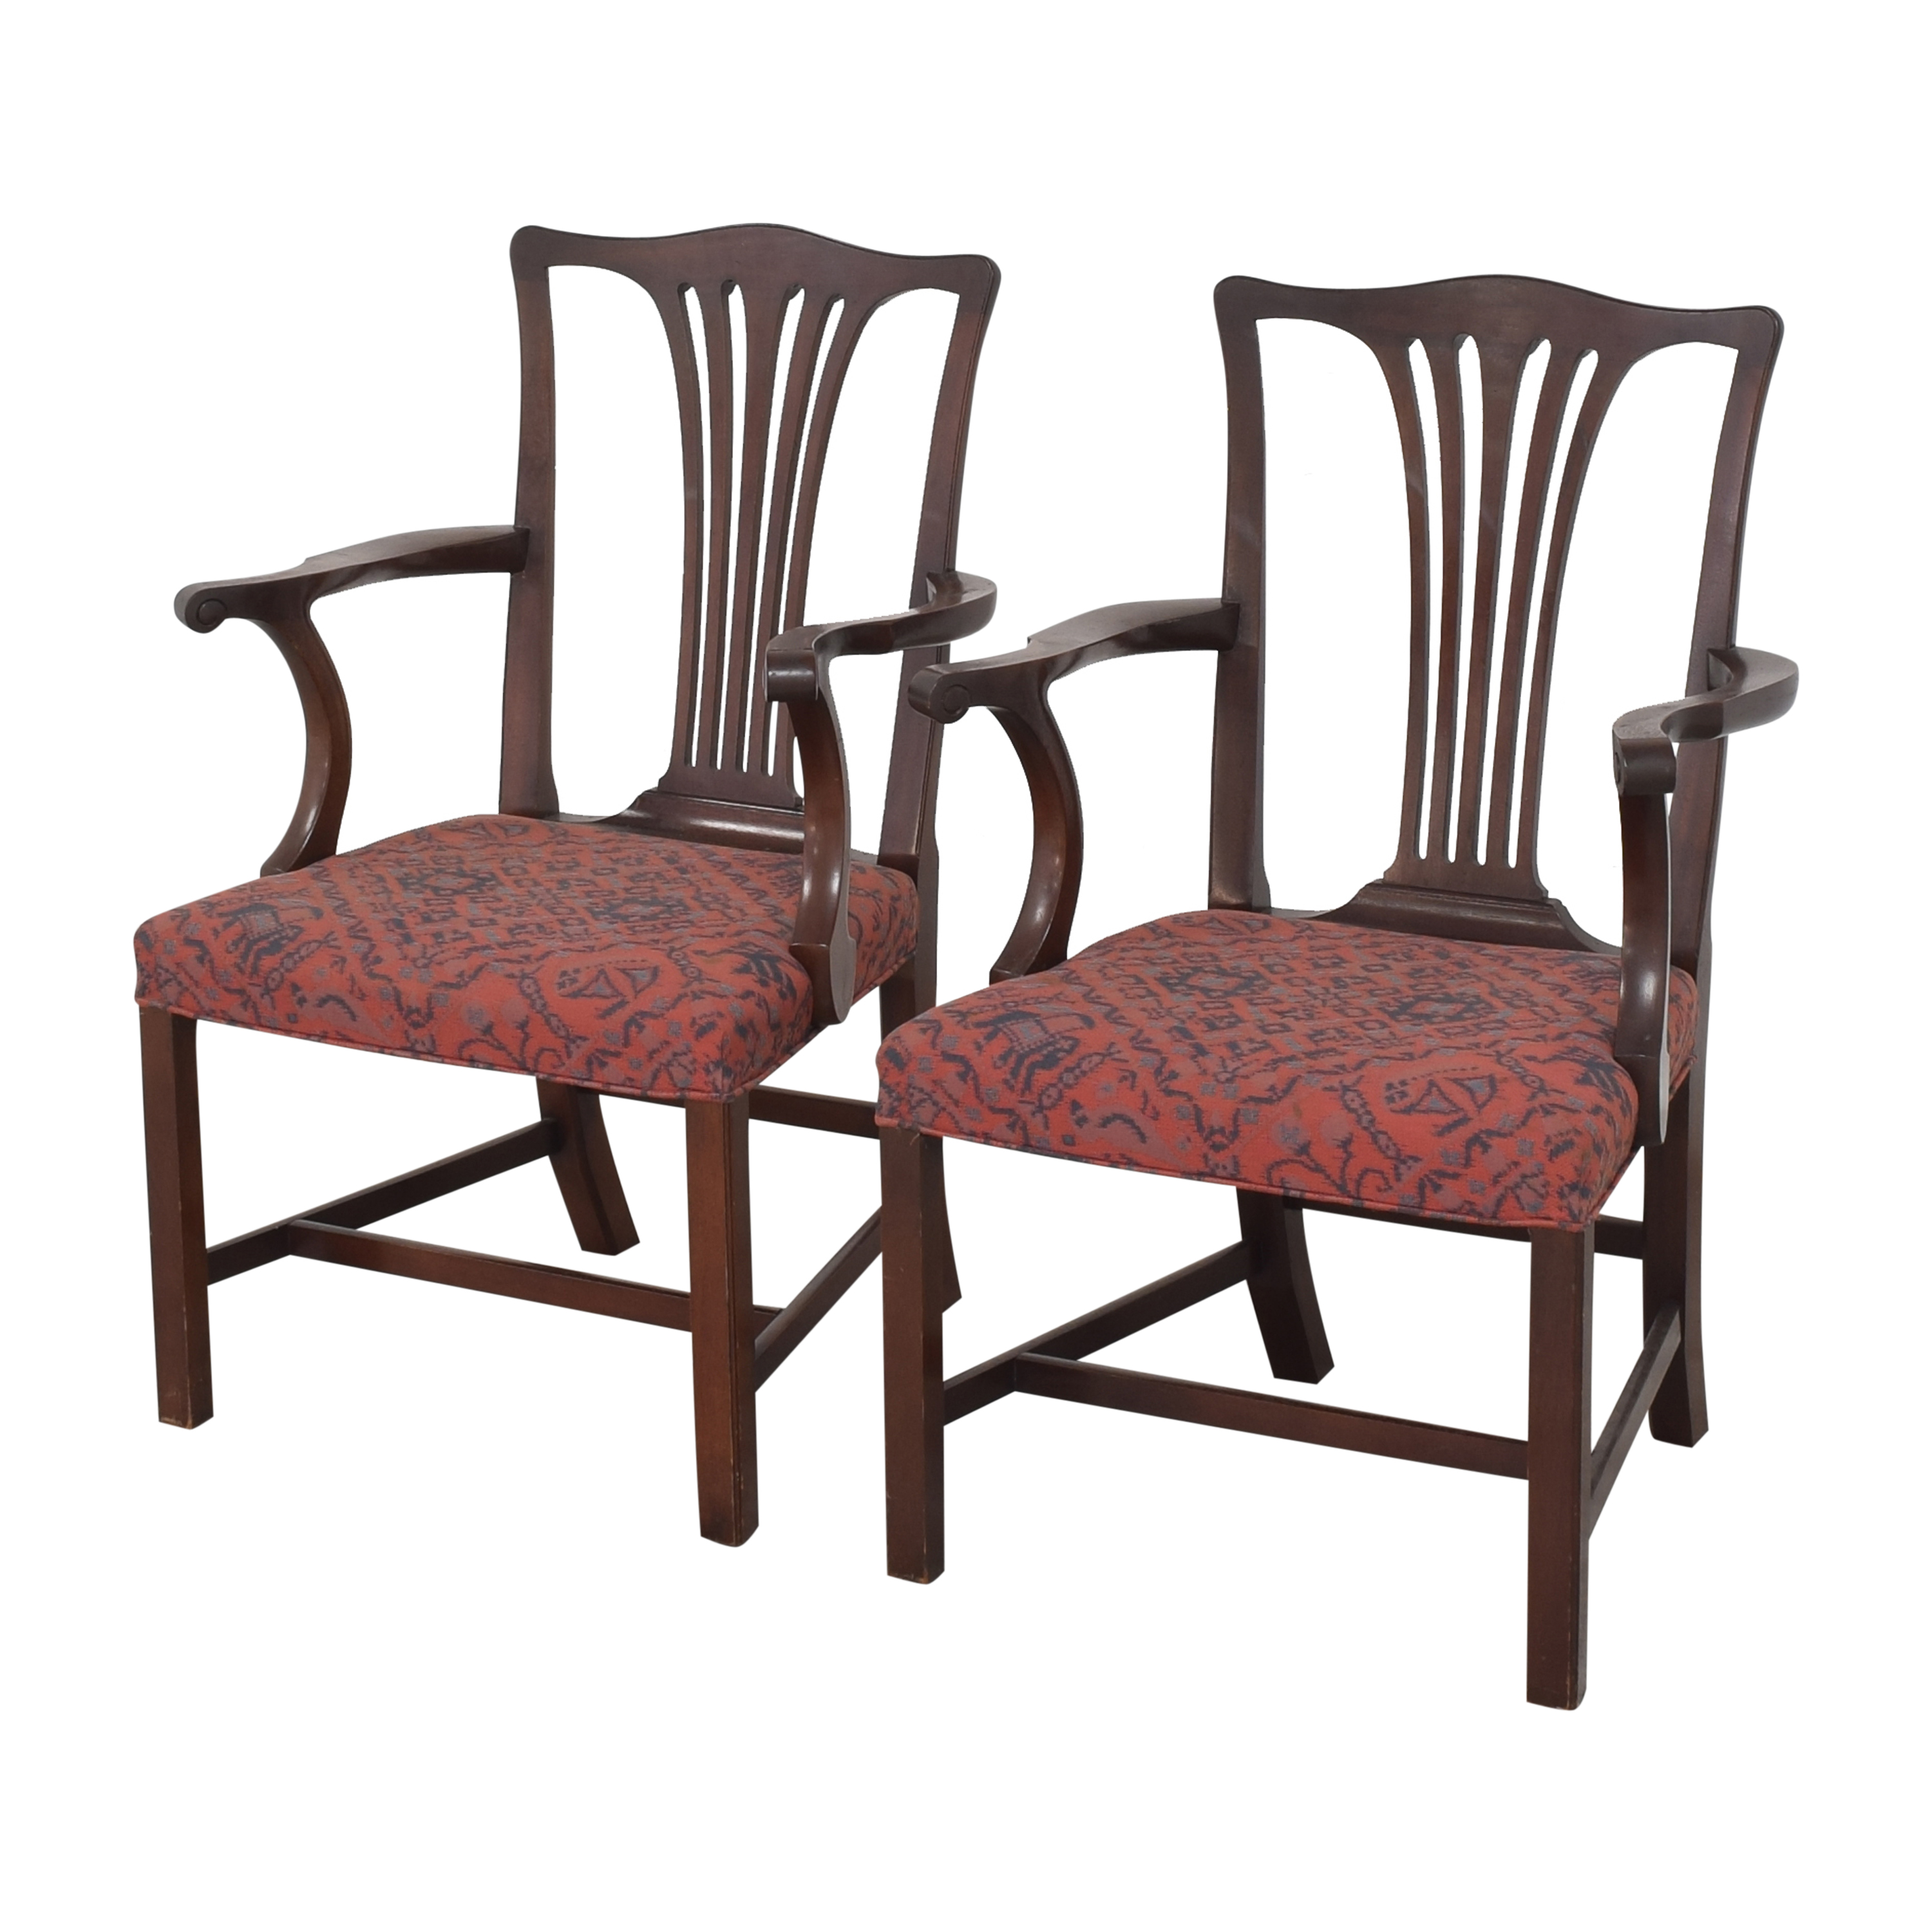 Wood & Hogan Wood & Hogan Country Chippendale Dining Arm Chairs red and dark brown